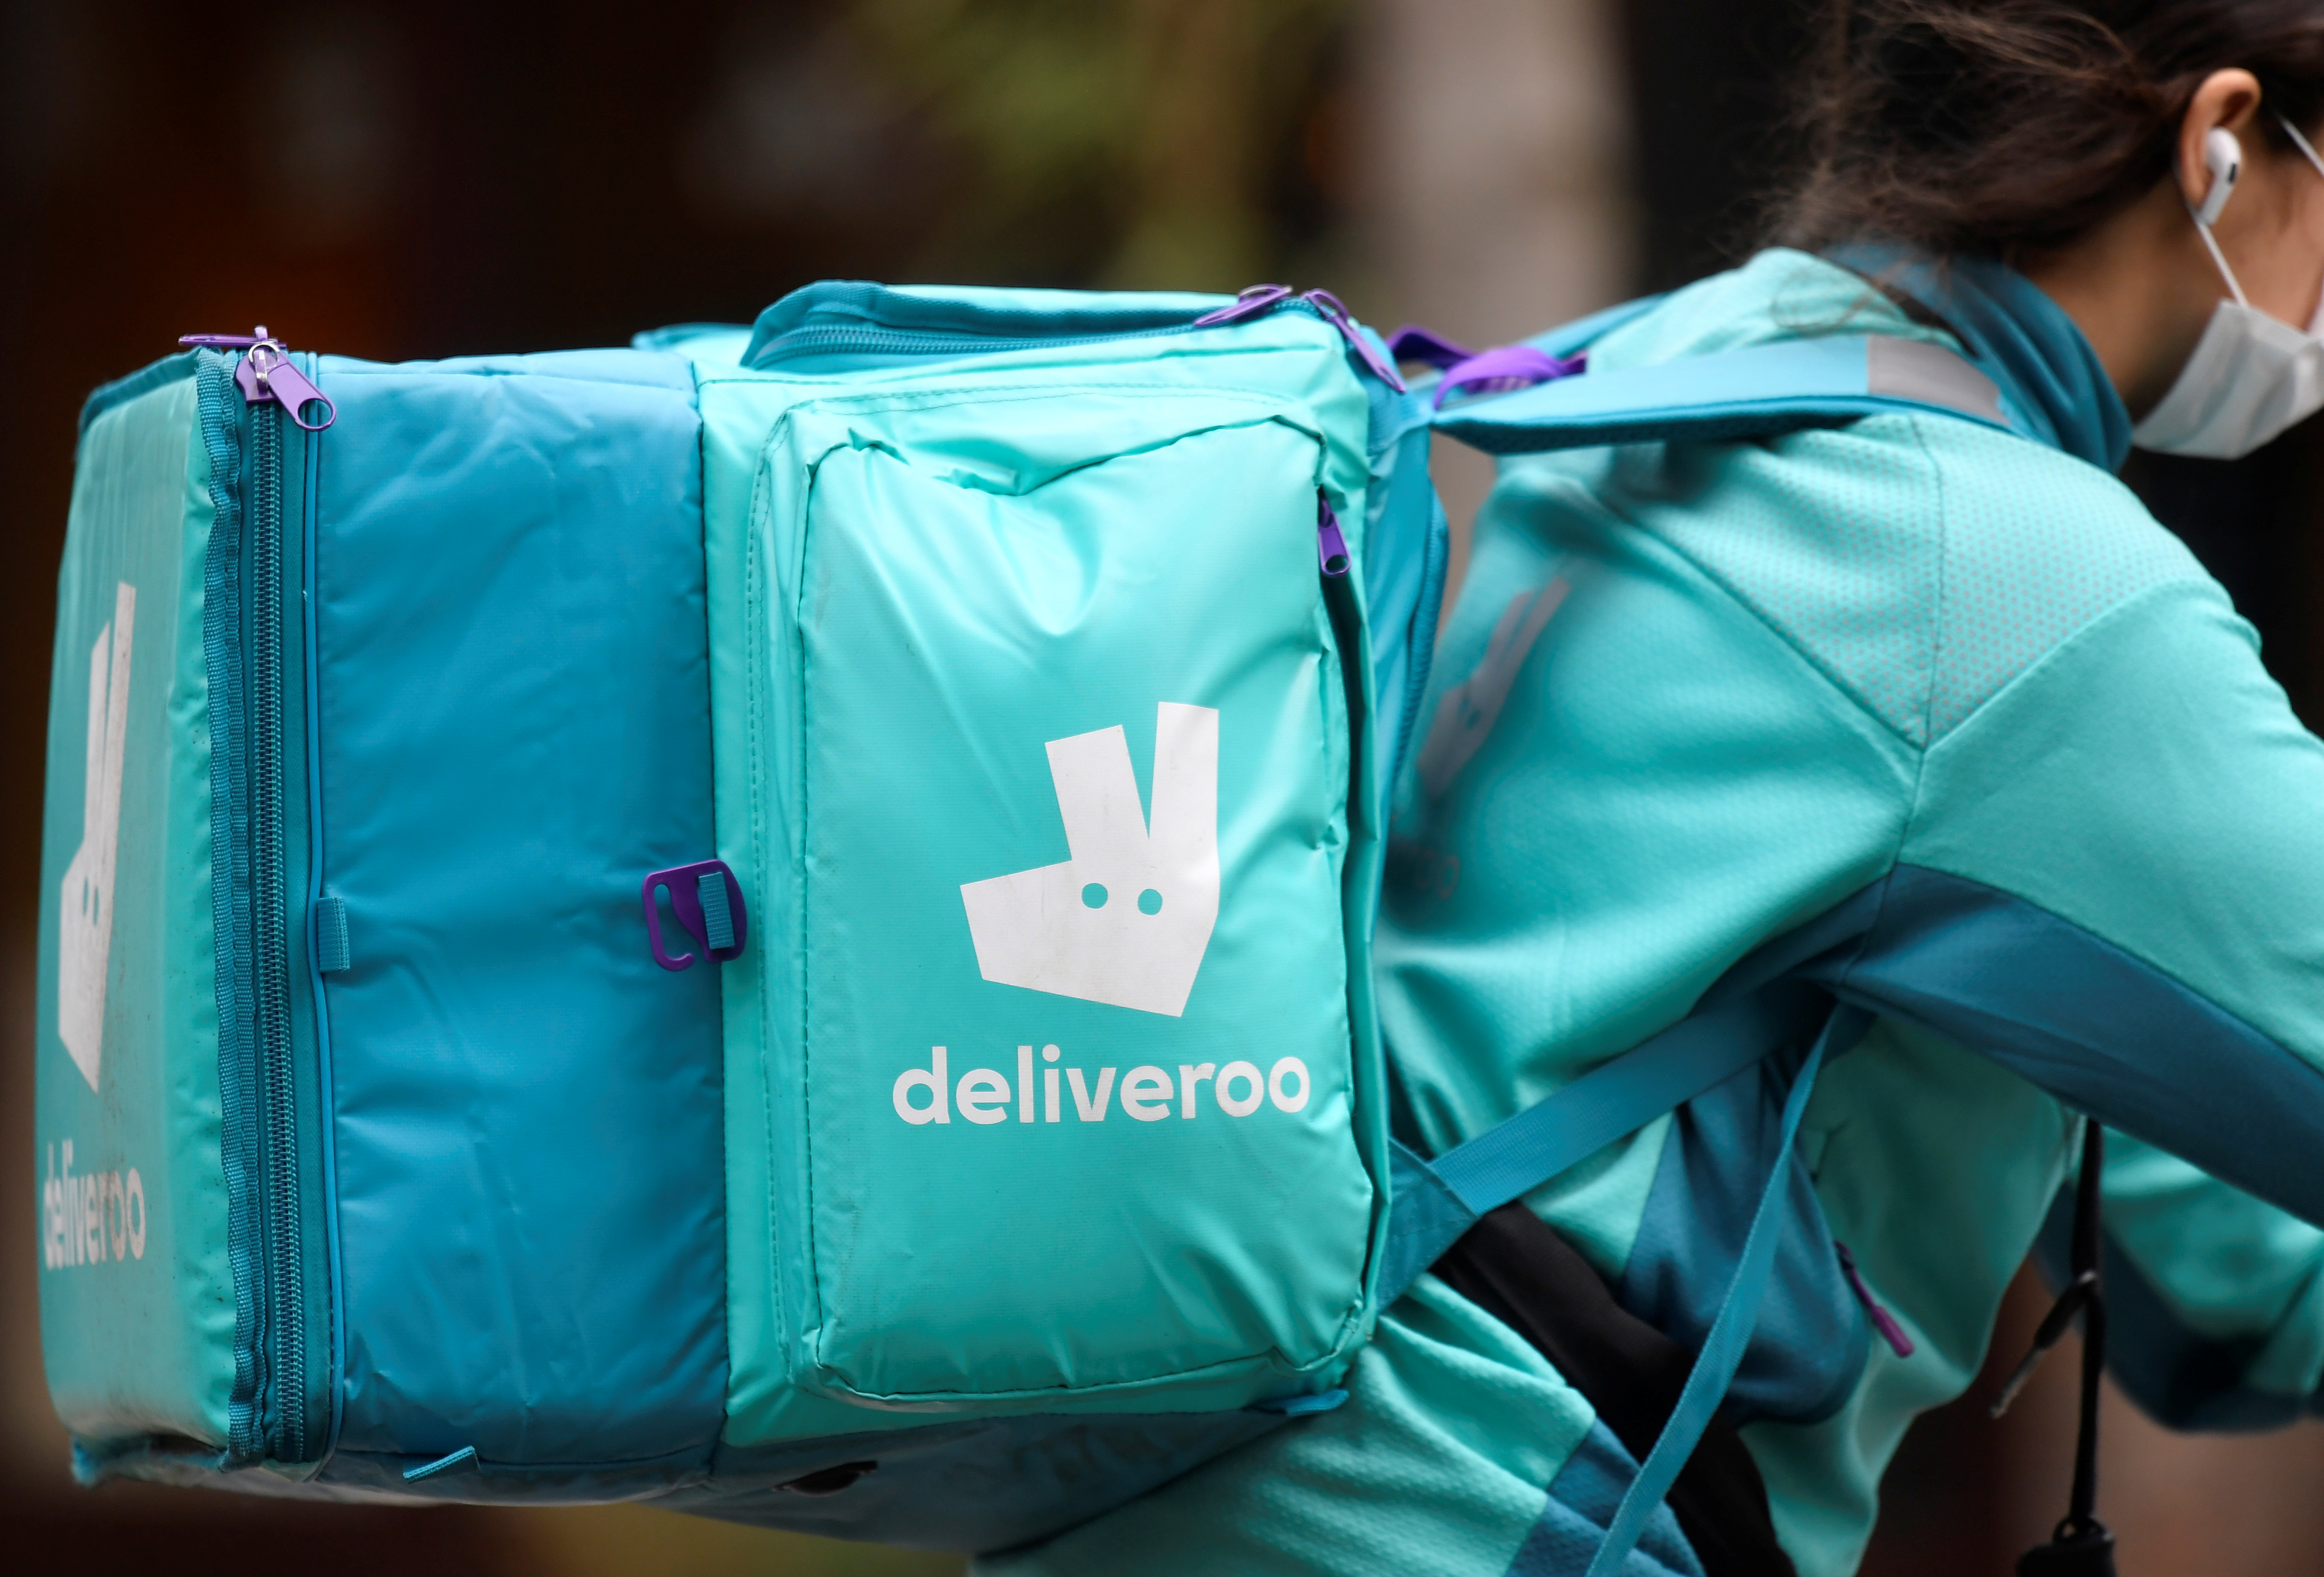 A Deliveroo delivery rider cycles in London, Britain, March 31, 2021. REUTERS/Toby Melville